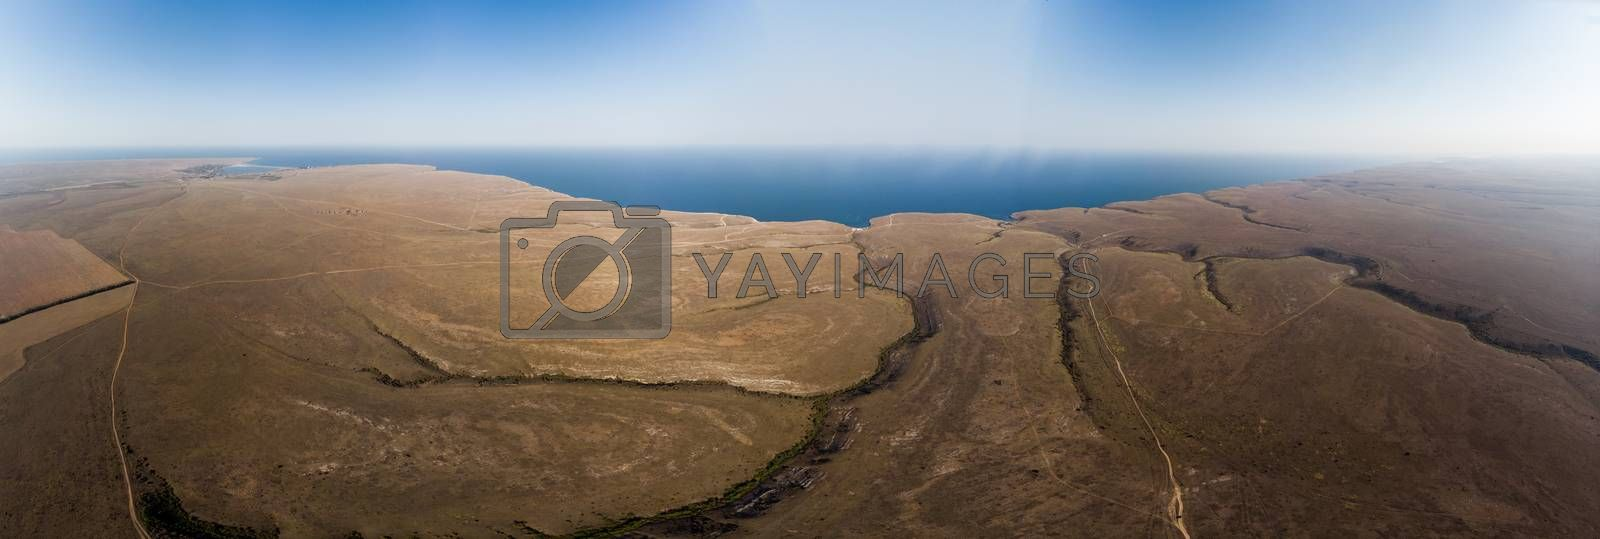 Aerial view of quiet, deserted place. without communication and civilization